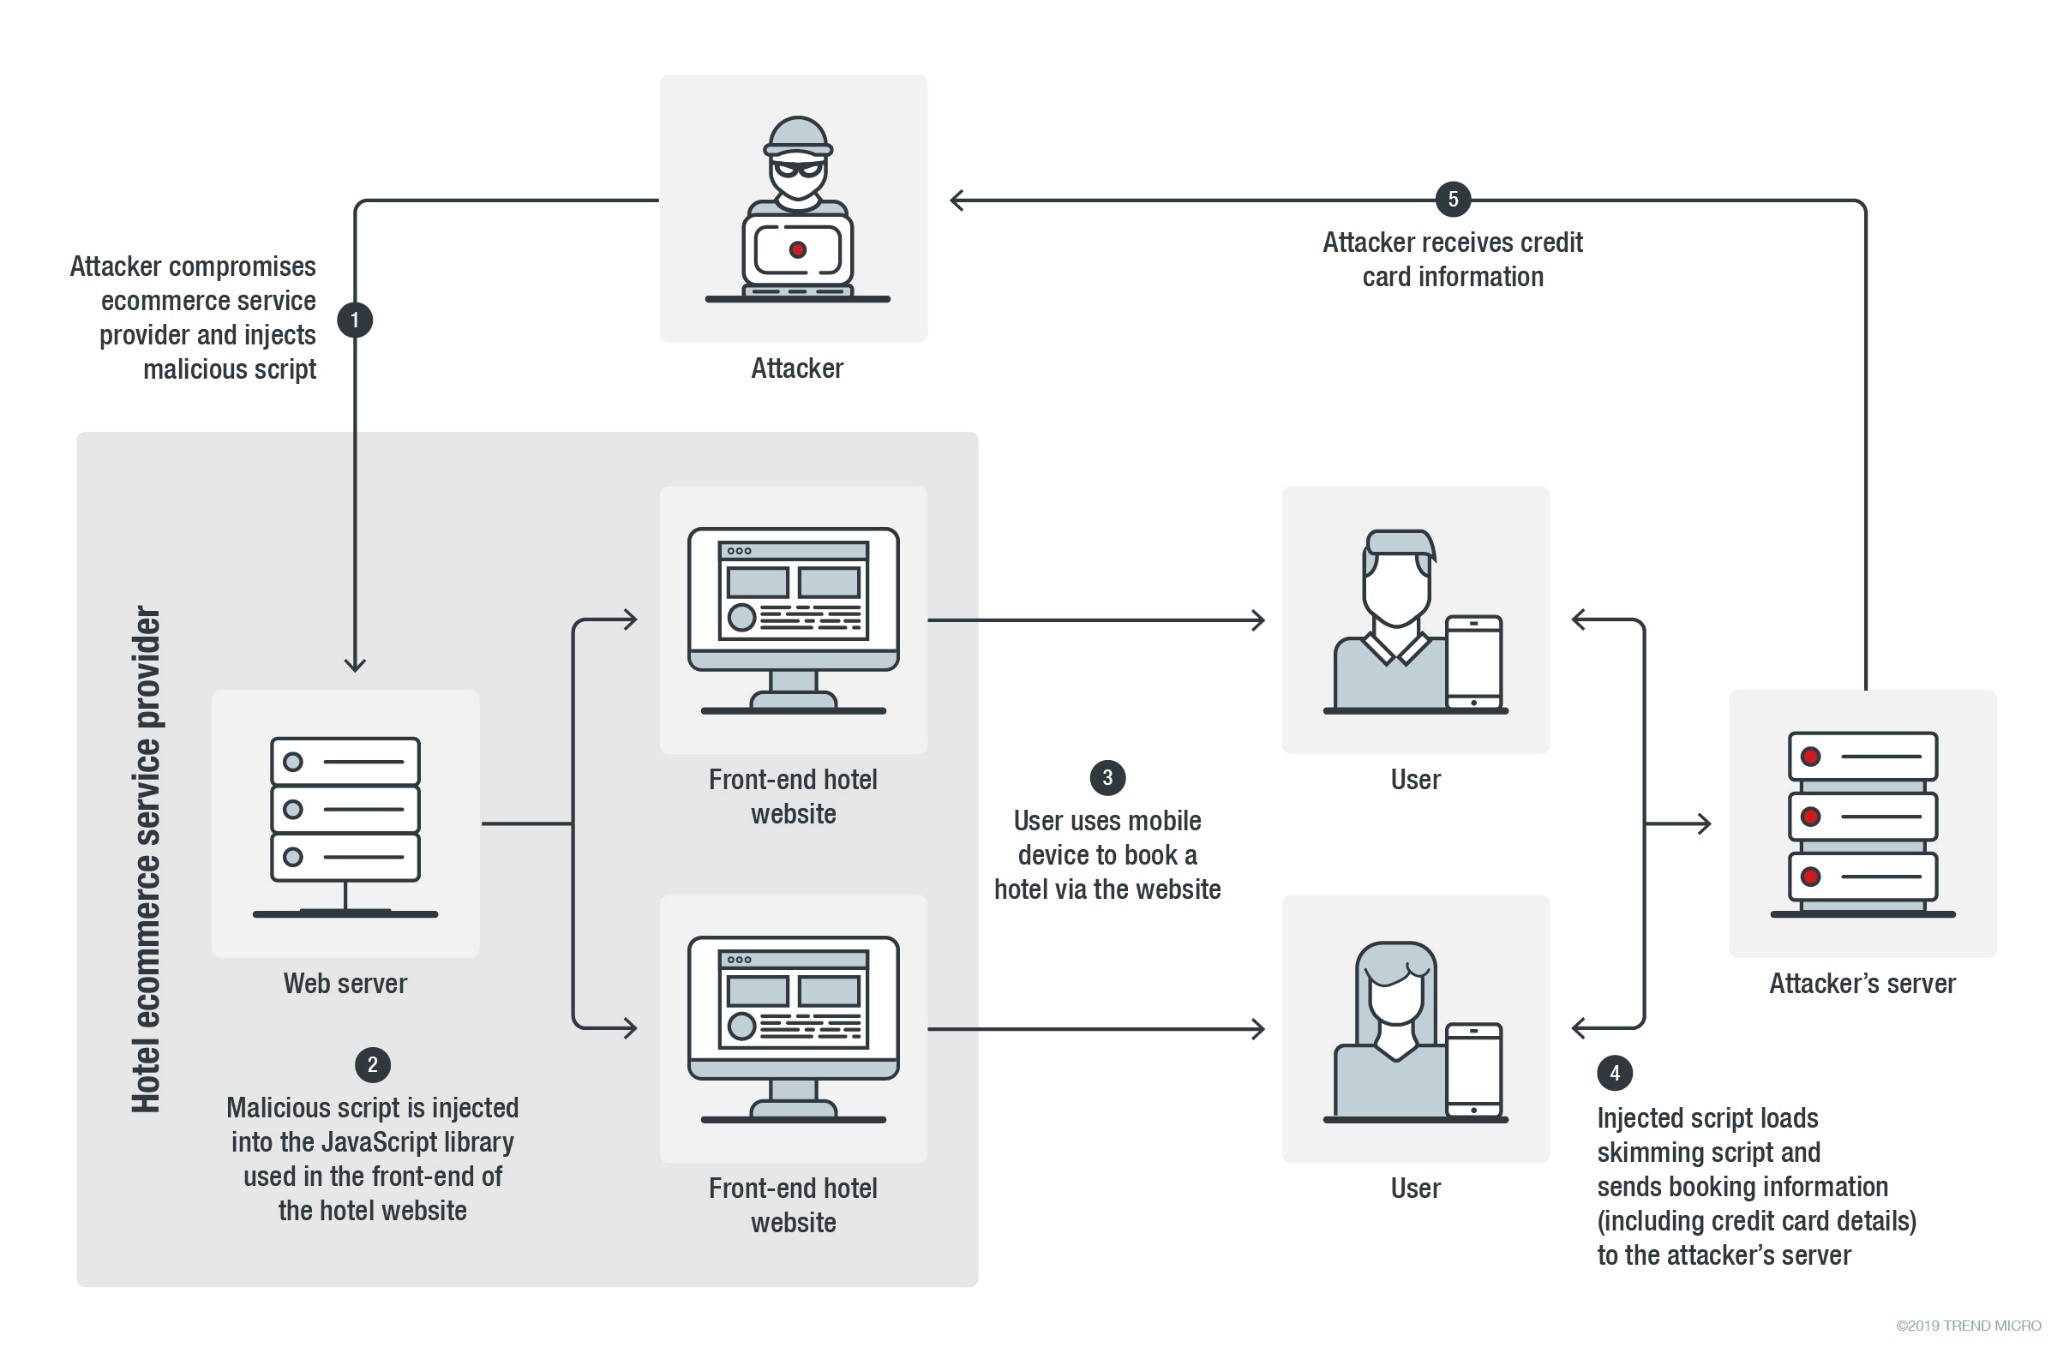 Figure 1. Infection chain of the Magecart skimming attack on the online hotel booking websites